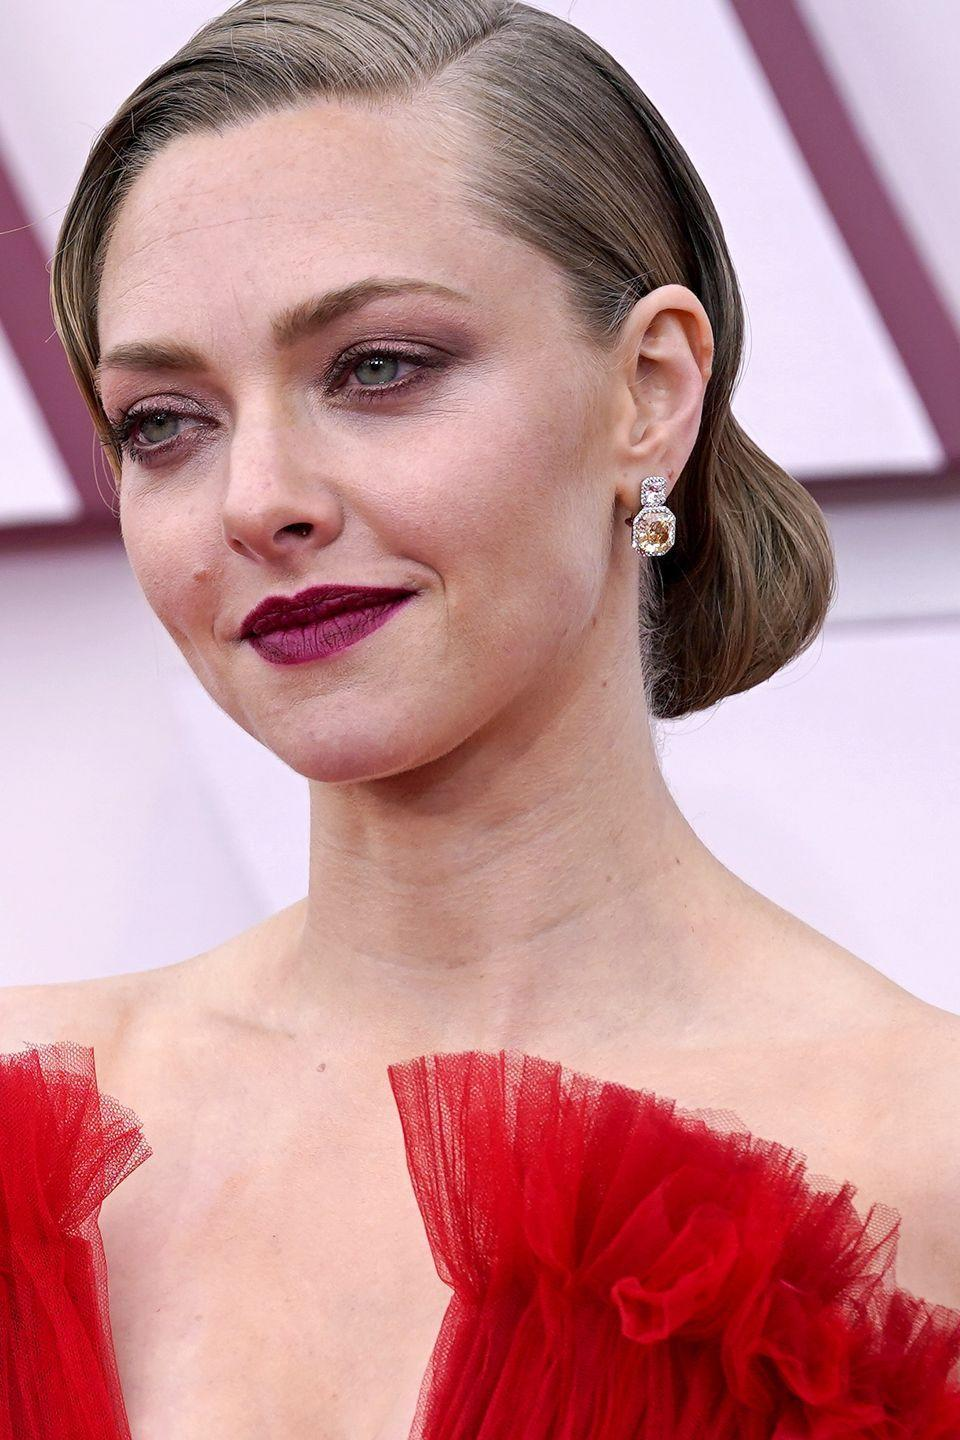 "<p>Seyfried's look was the picture of Golden Age Hollywood thanks to the handiwork of makeup artist Genevieve Herr. To complete the coordinated plummy-lip and eye, the artist used <a href=""https://www.sephora.com/product/monsieur-big-mascara-P419848"" rel=""nofollow noopener"" target=""_blank"" data-ylk=""slk:Lancome Monsieur Big Mascara"" class=""link rapid-noclick-resp"">Lancome Monsieur Big Mascara</a>.</p>"